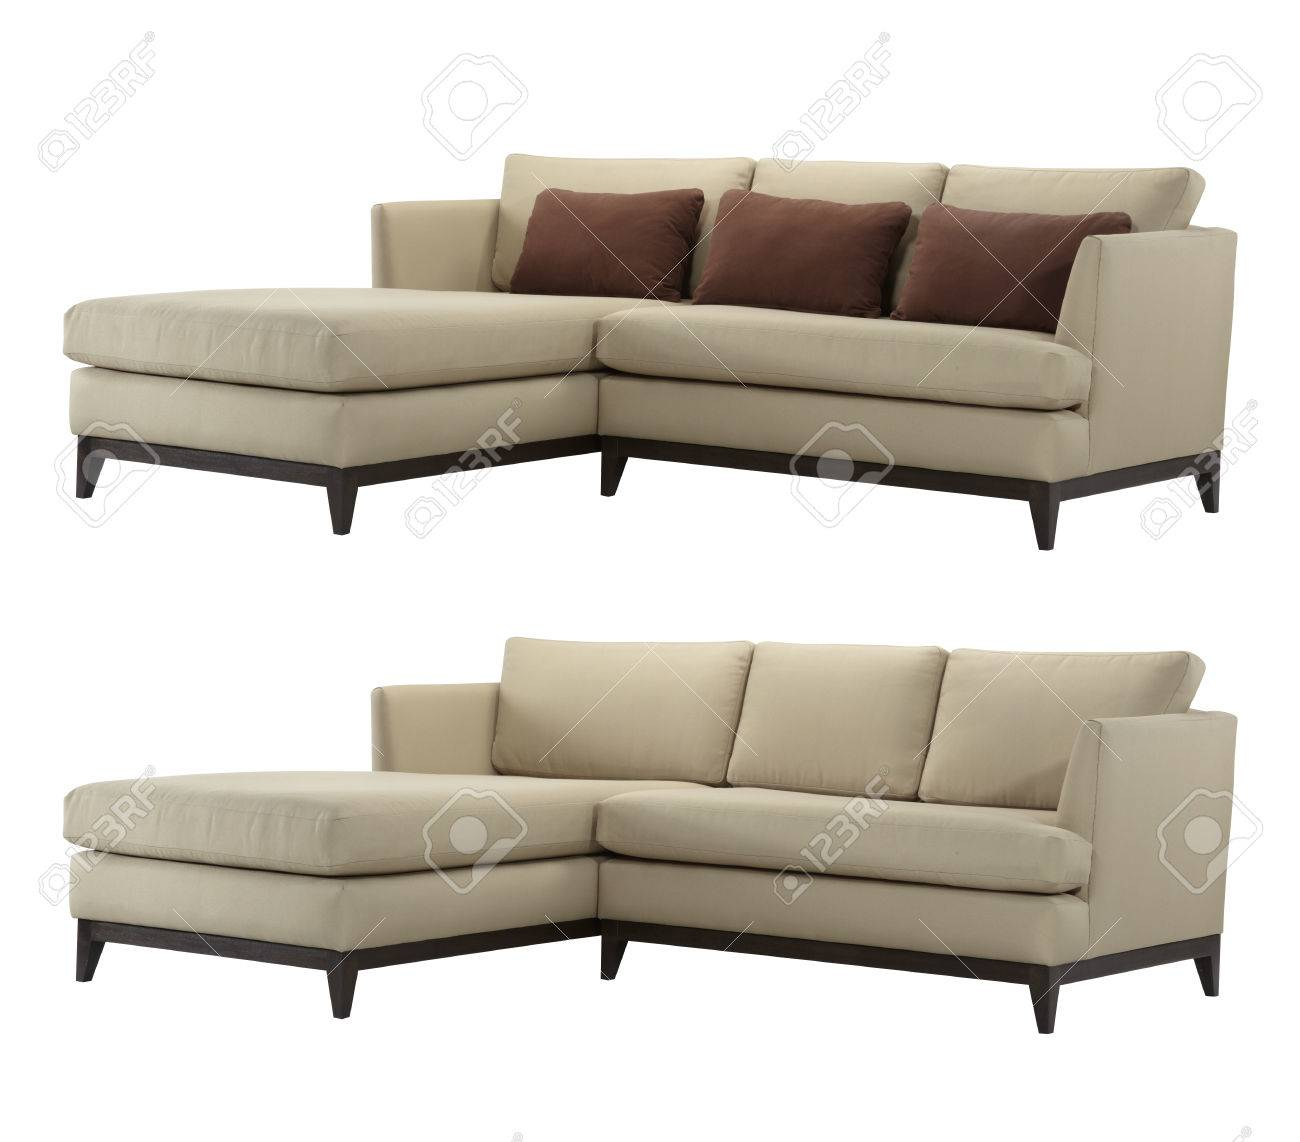 L-shaped sofa, with and without pillows isolated on white background.